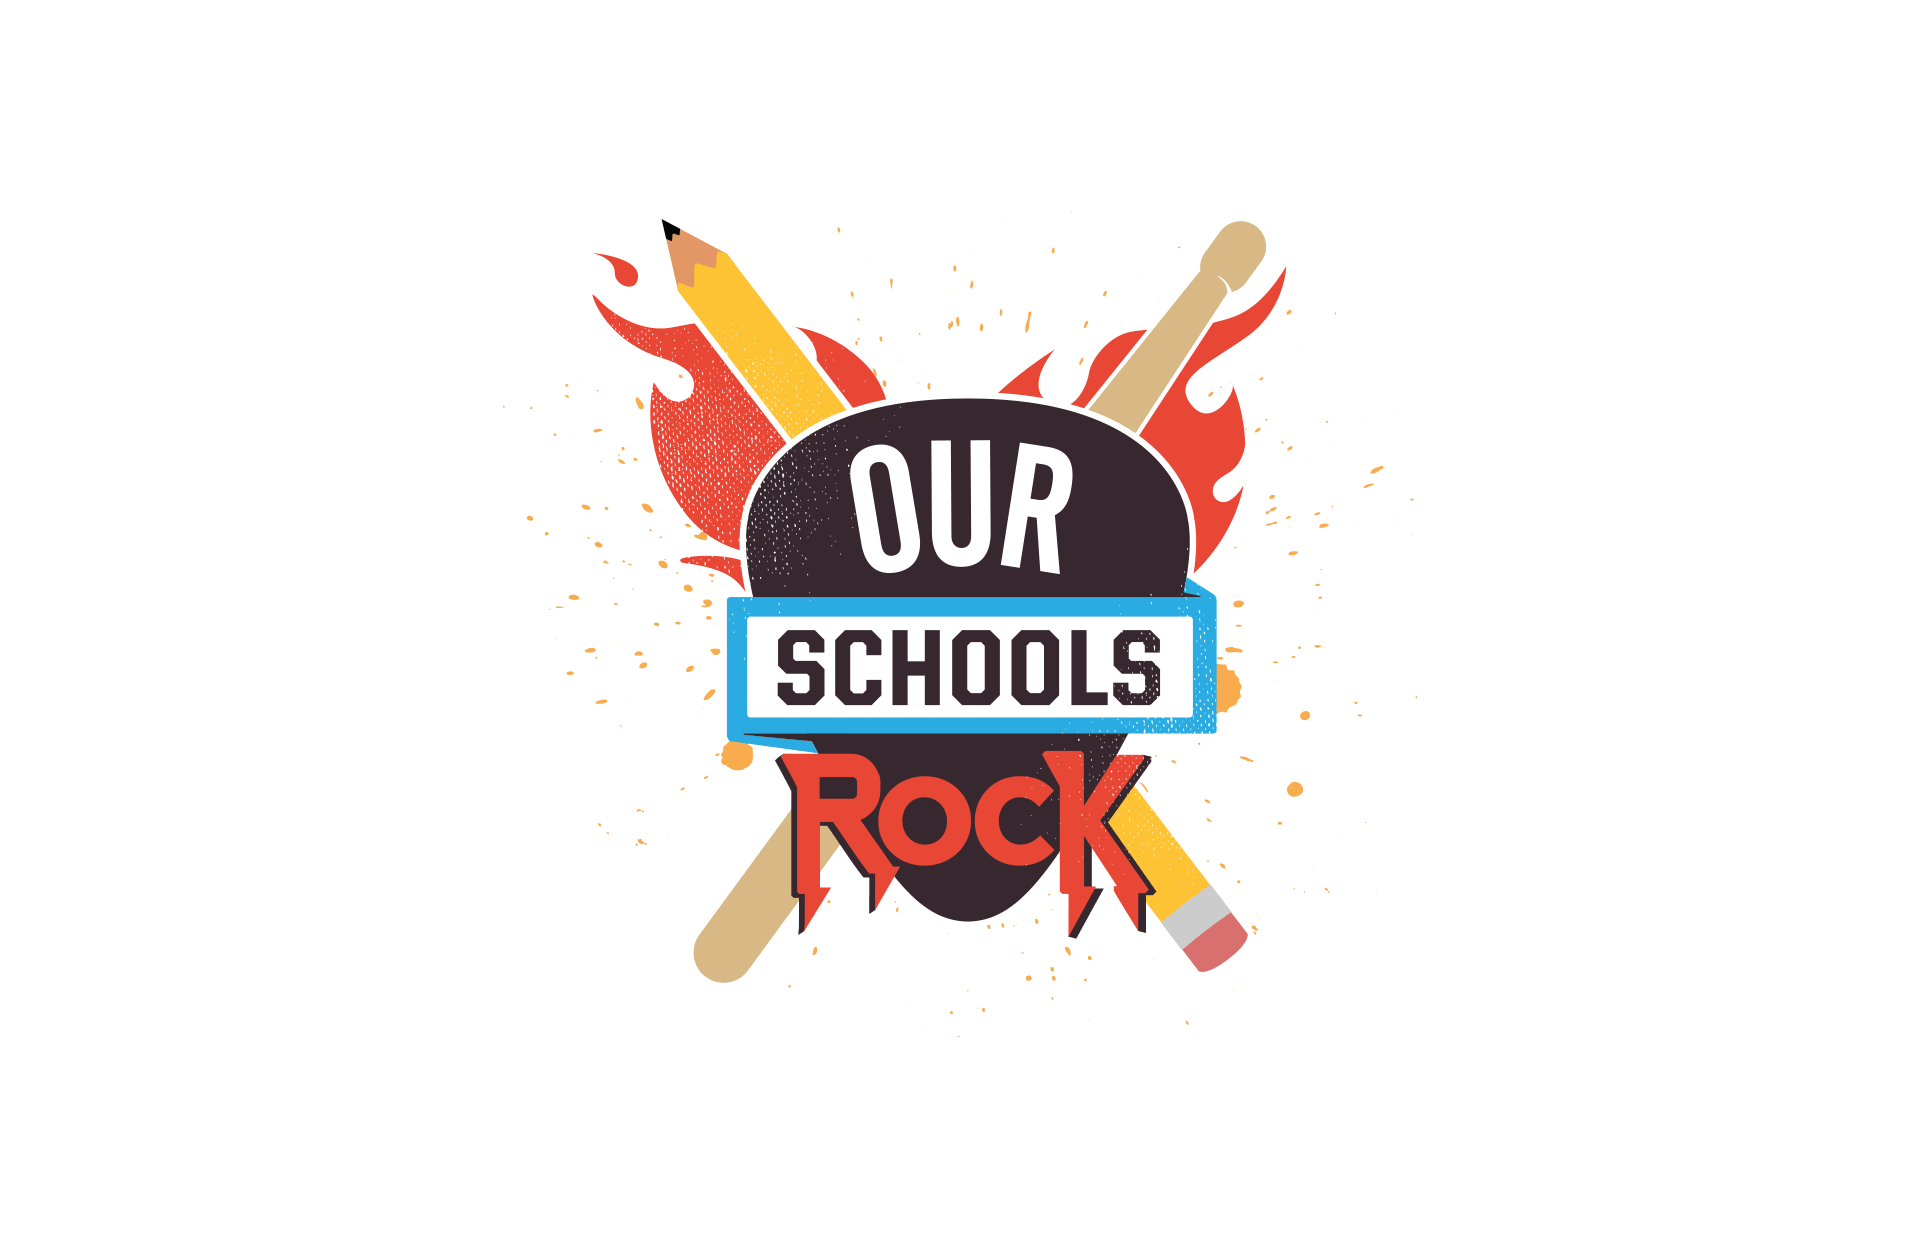 Our Schools Rock final logo